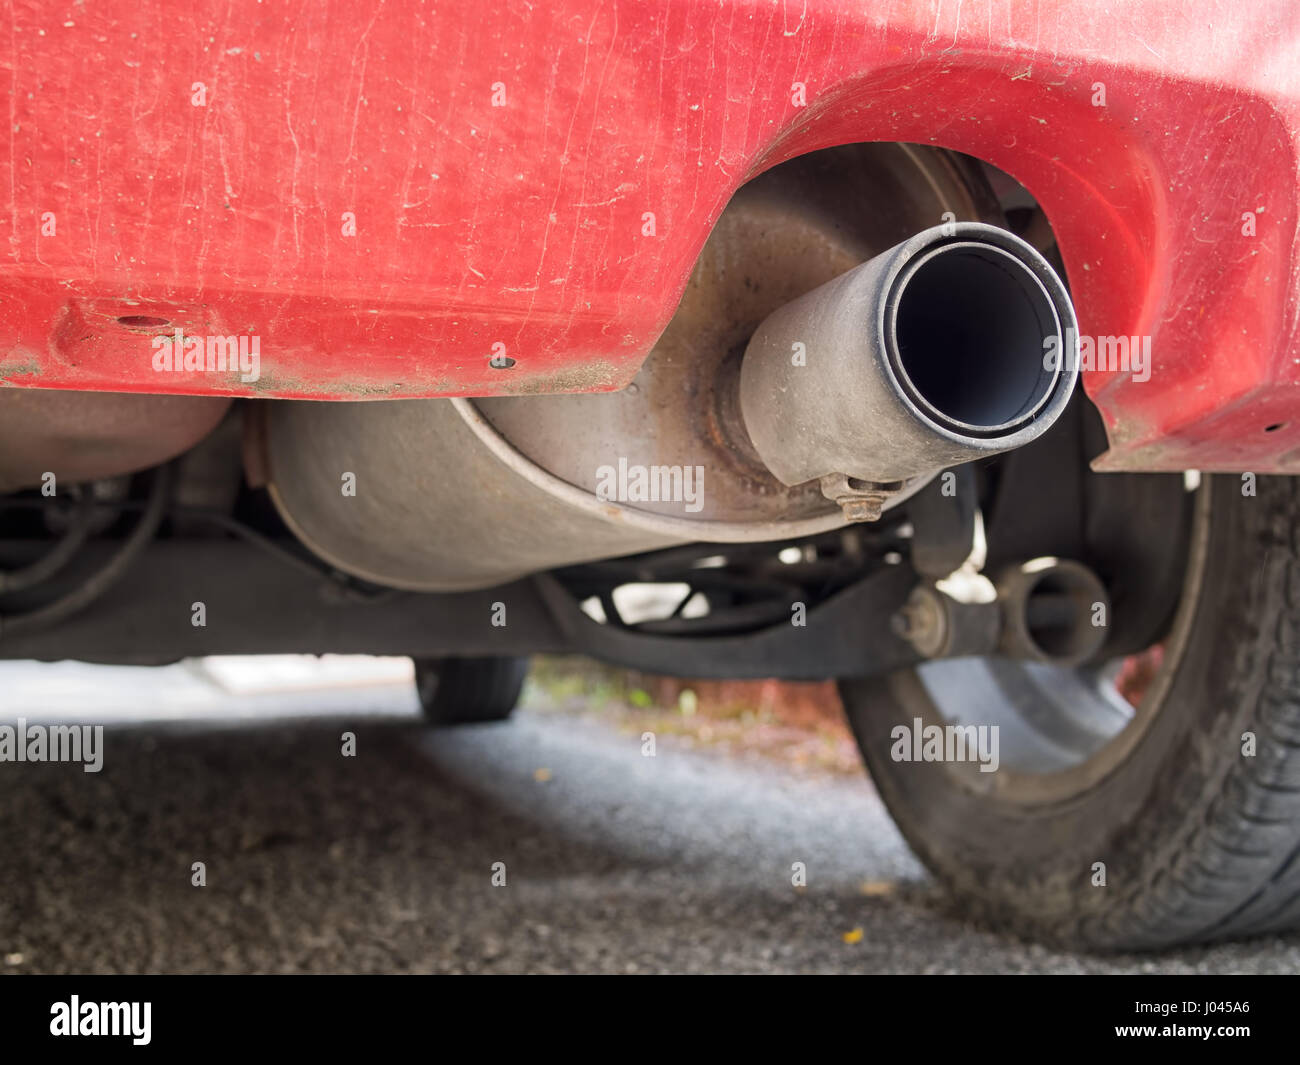 Diesel car exhaust with visible soot. Stock Photo